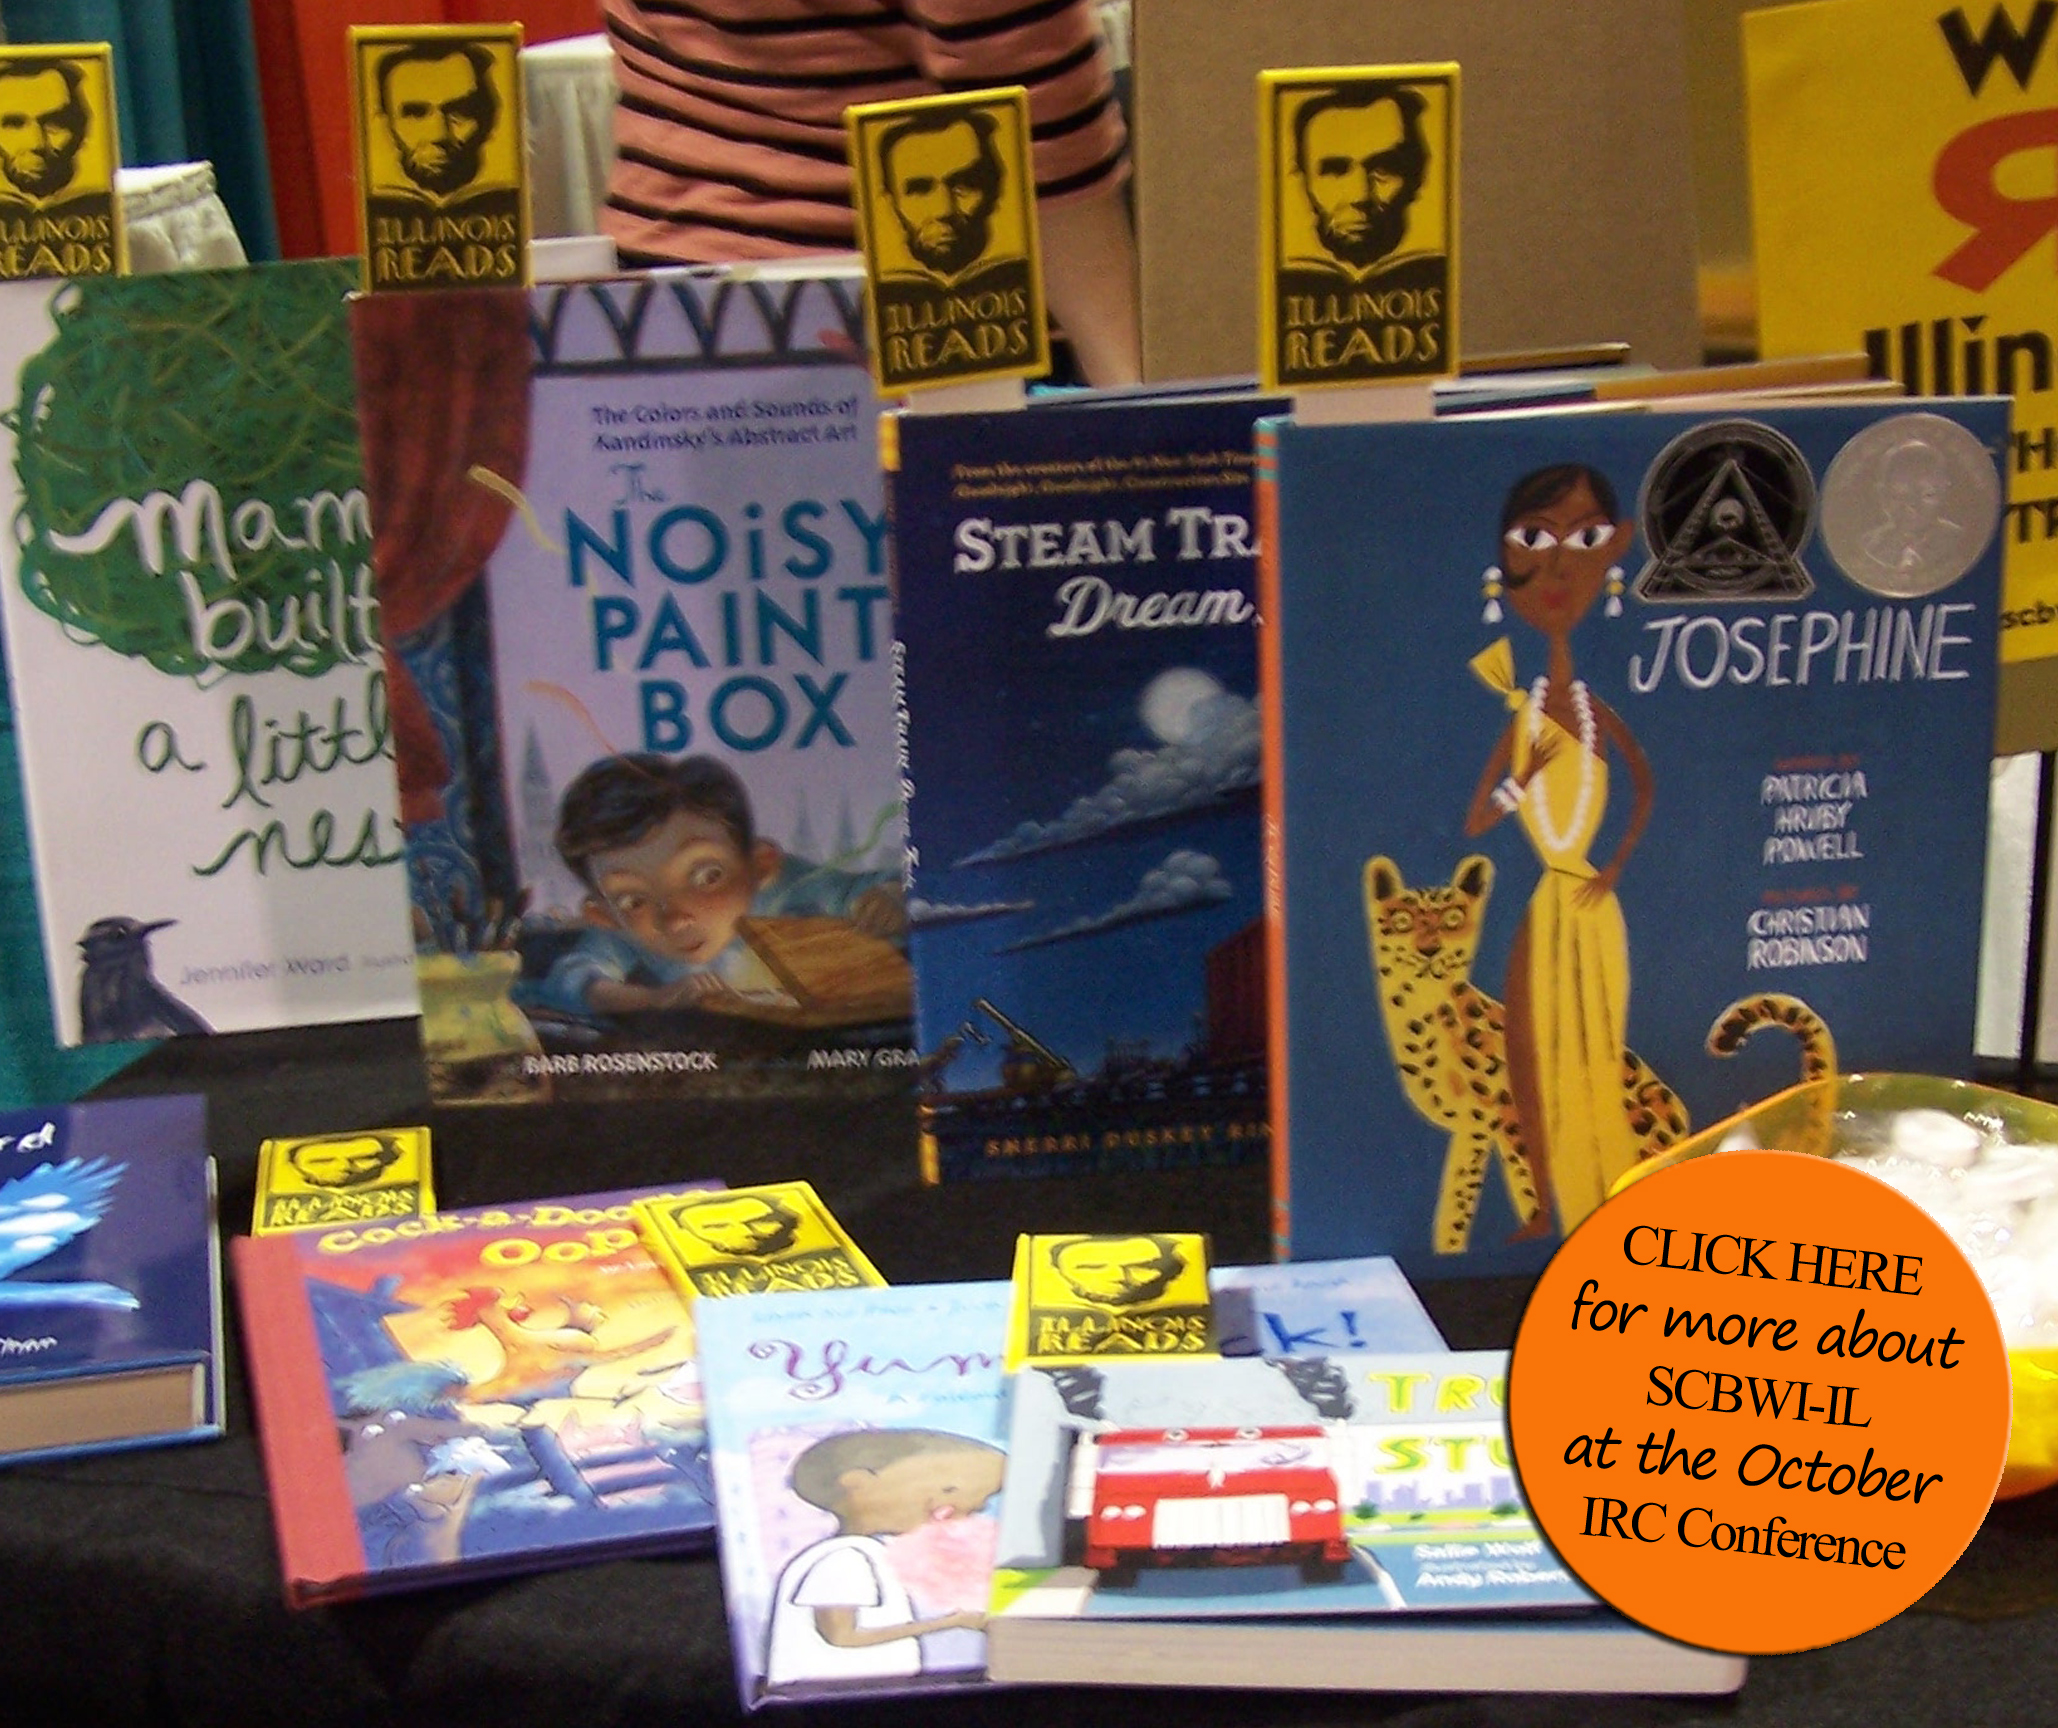 The SCBWI-IL Booth Team is making plans to wow Illinois teachers and school librarians at their annual conference Illinois Reading Conference, IRC, Oct. 3-4, in Peoria.  We plan to showcase and hand-sell recently published (2017-2019) PAL books. In addition we will distribute your posters, flyers, postcards and brochures to promote your books and your school/library visits/Skype presentations. How can you make sure your book/promo materials are included? 1 By SEPTEMBER 25, 2019, mail two copies of your (2017-2019) PAL published book and any promotional material (150 copies) to Louann Brown.  Please email Louann Brown for her mailing address. 2. If you'd like to participate by doing a book signing and manning the booth, etc., please contact:  Louann Brown                                                                                                                                              3. A few authors cleverly promote themselves by offering free Skype visits, a toy that relates to their book, posters, etc.  If this sounds like something you'd like to do, contact Louann at the email posted above.